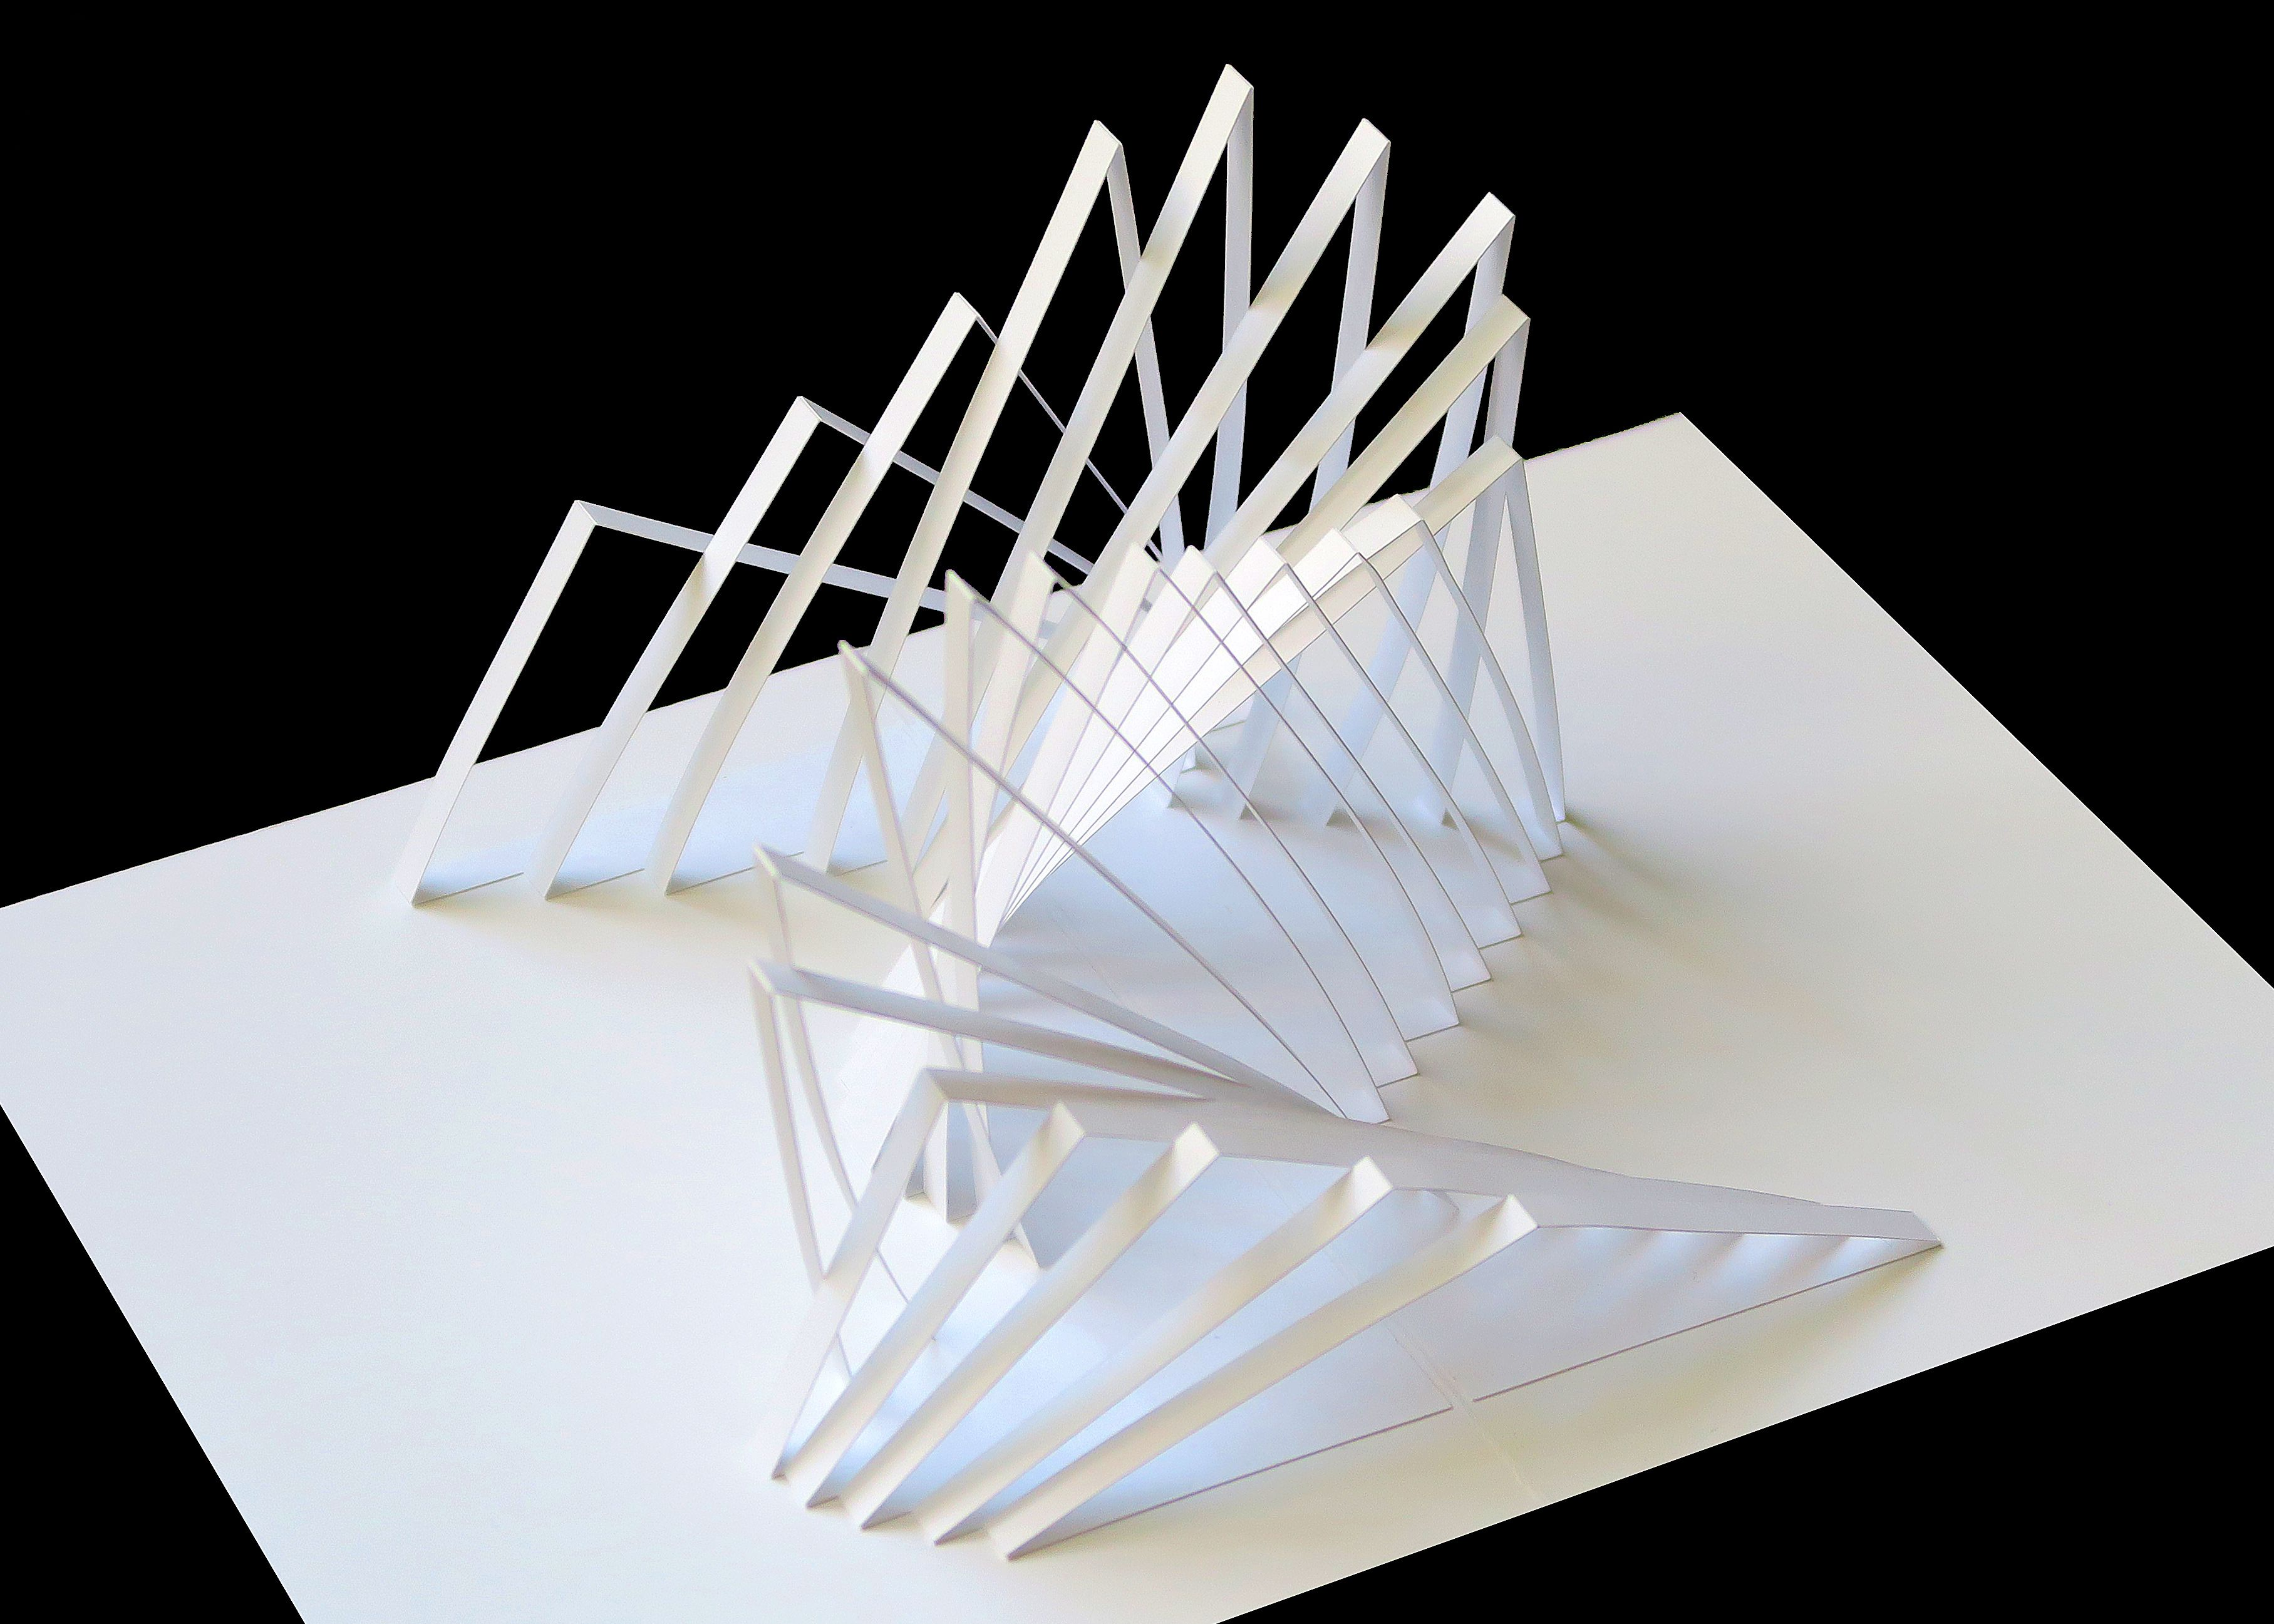 Amazing Pop Up Card Paper Architecture Paper Model Architecture Pop Up Cards